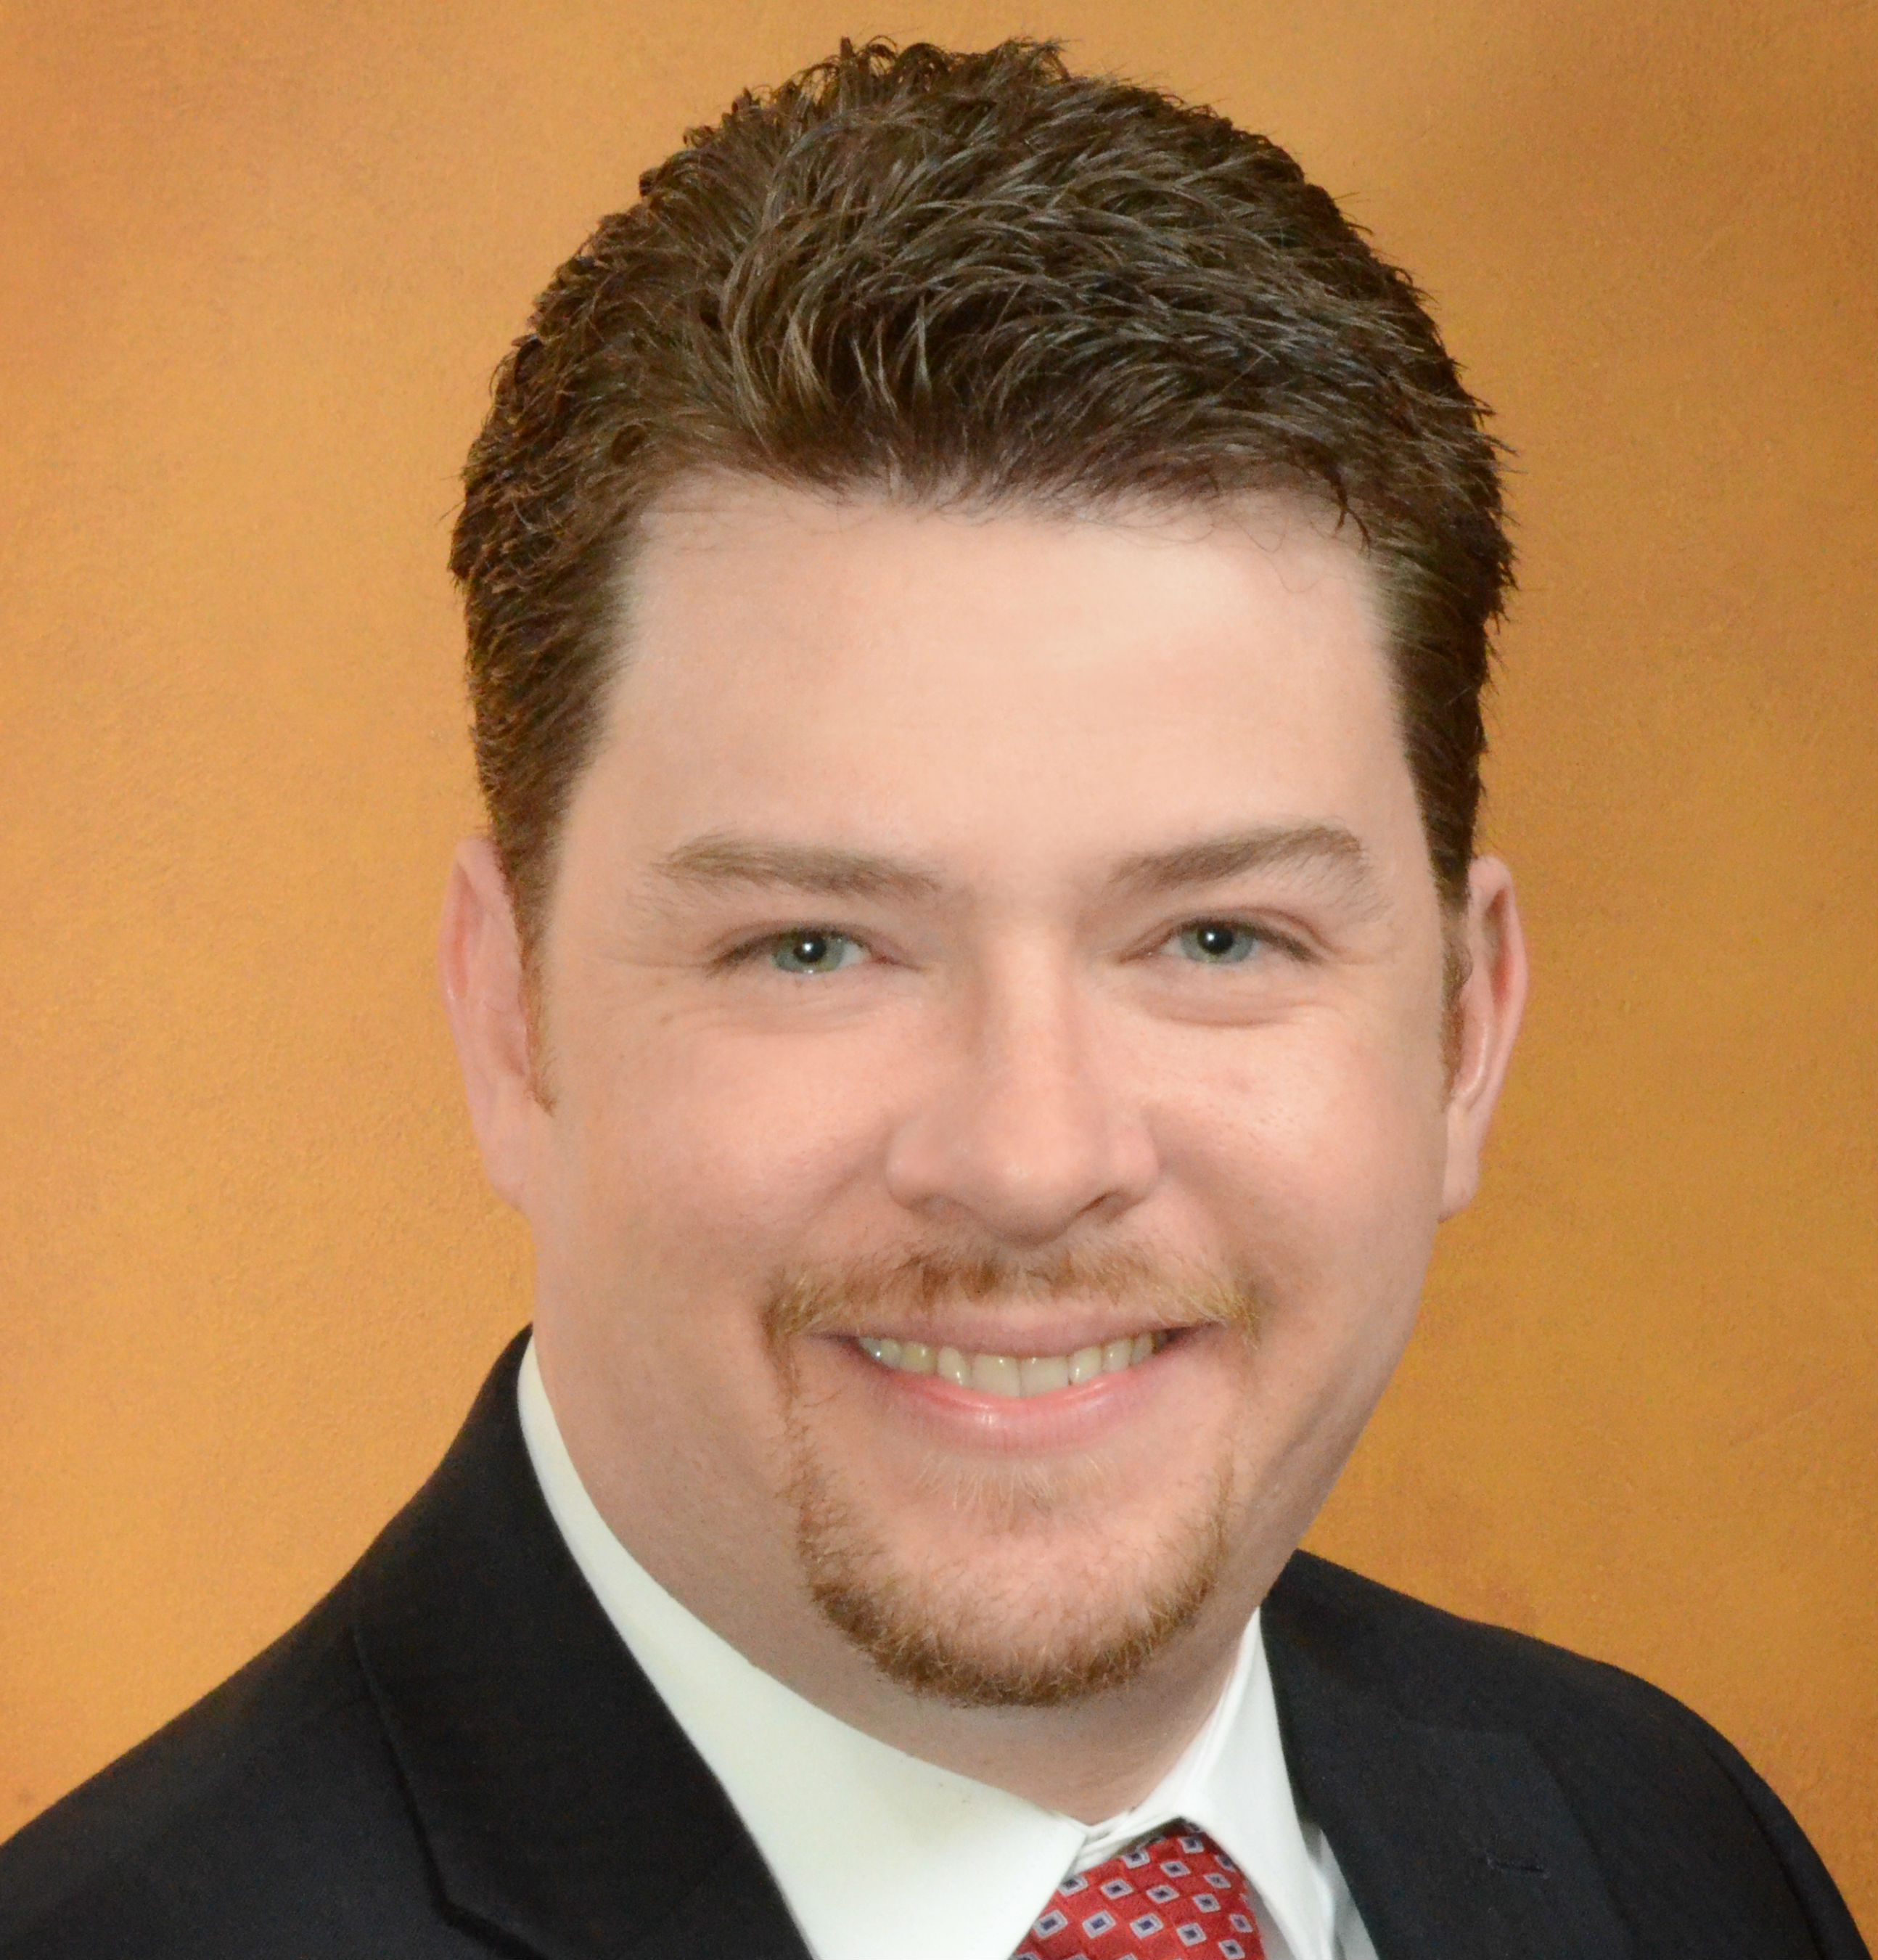 Chris Rondinelli, financial advisor West Mifflin PA